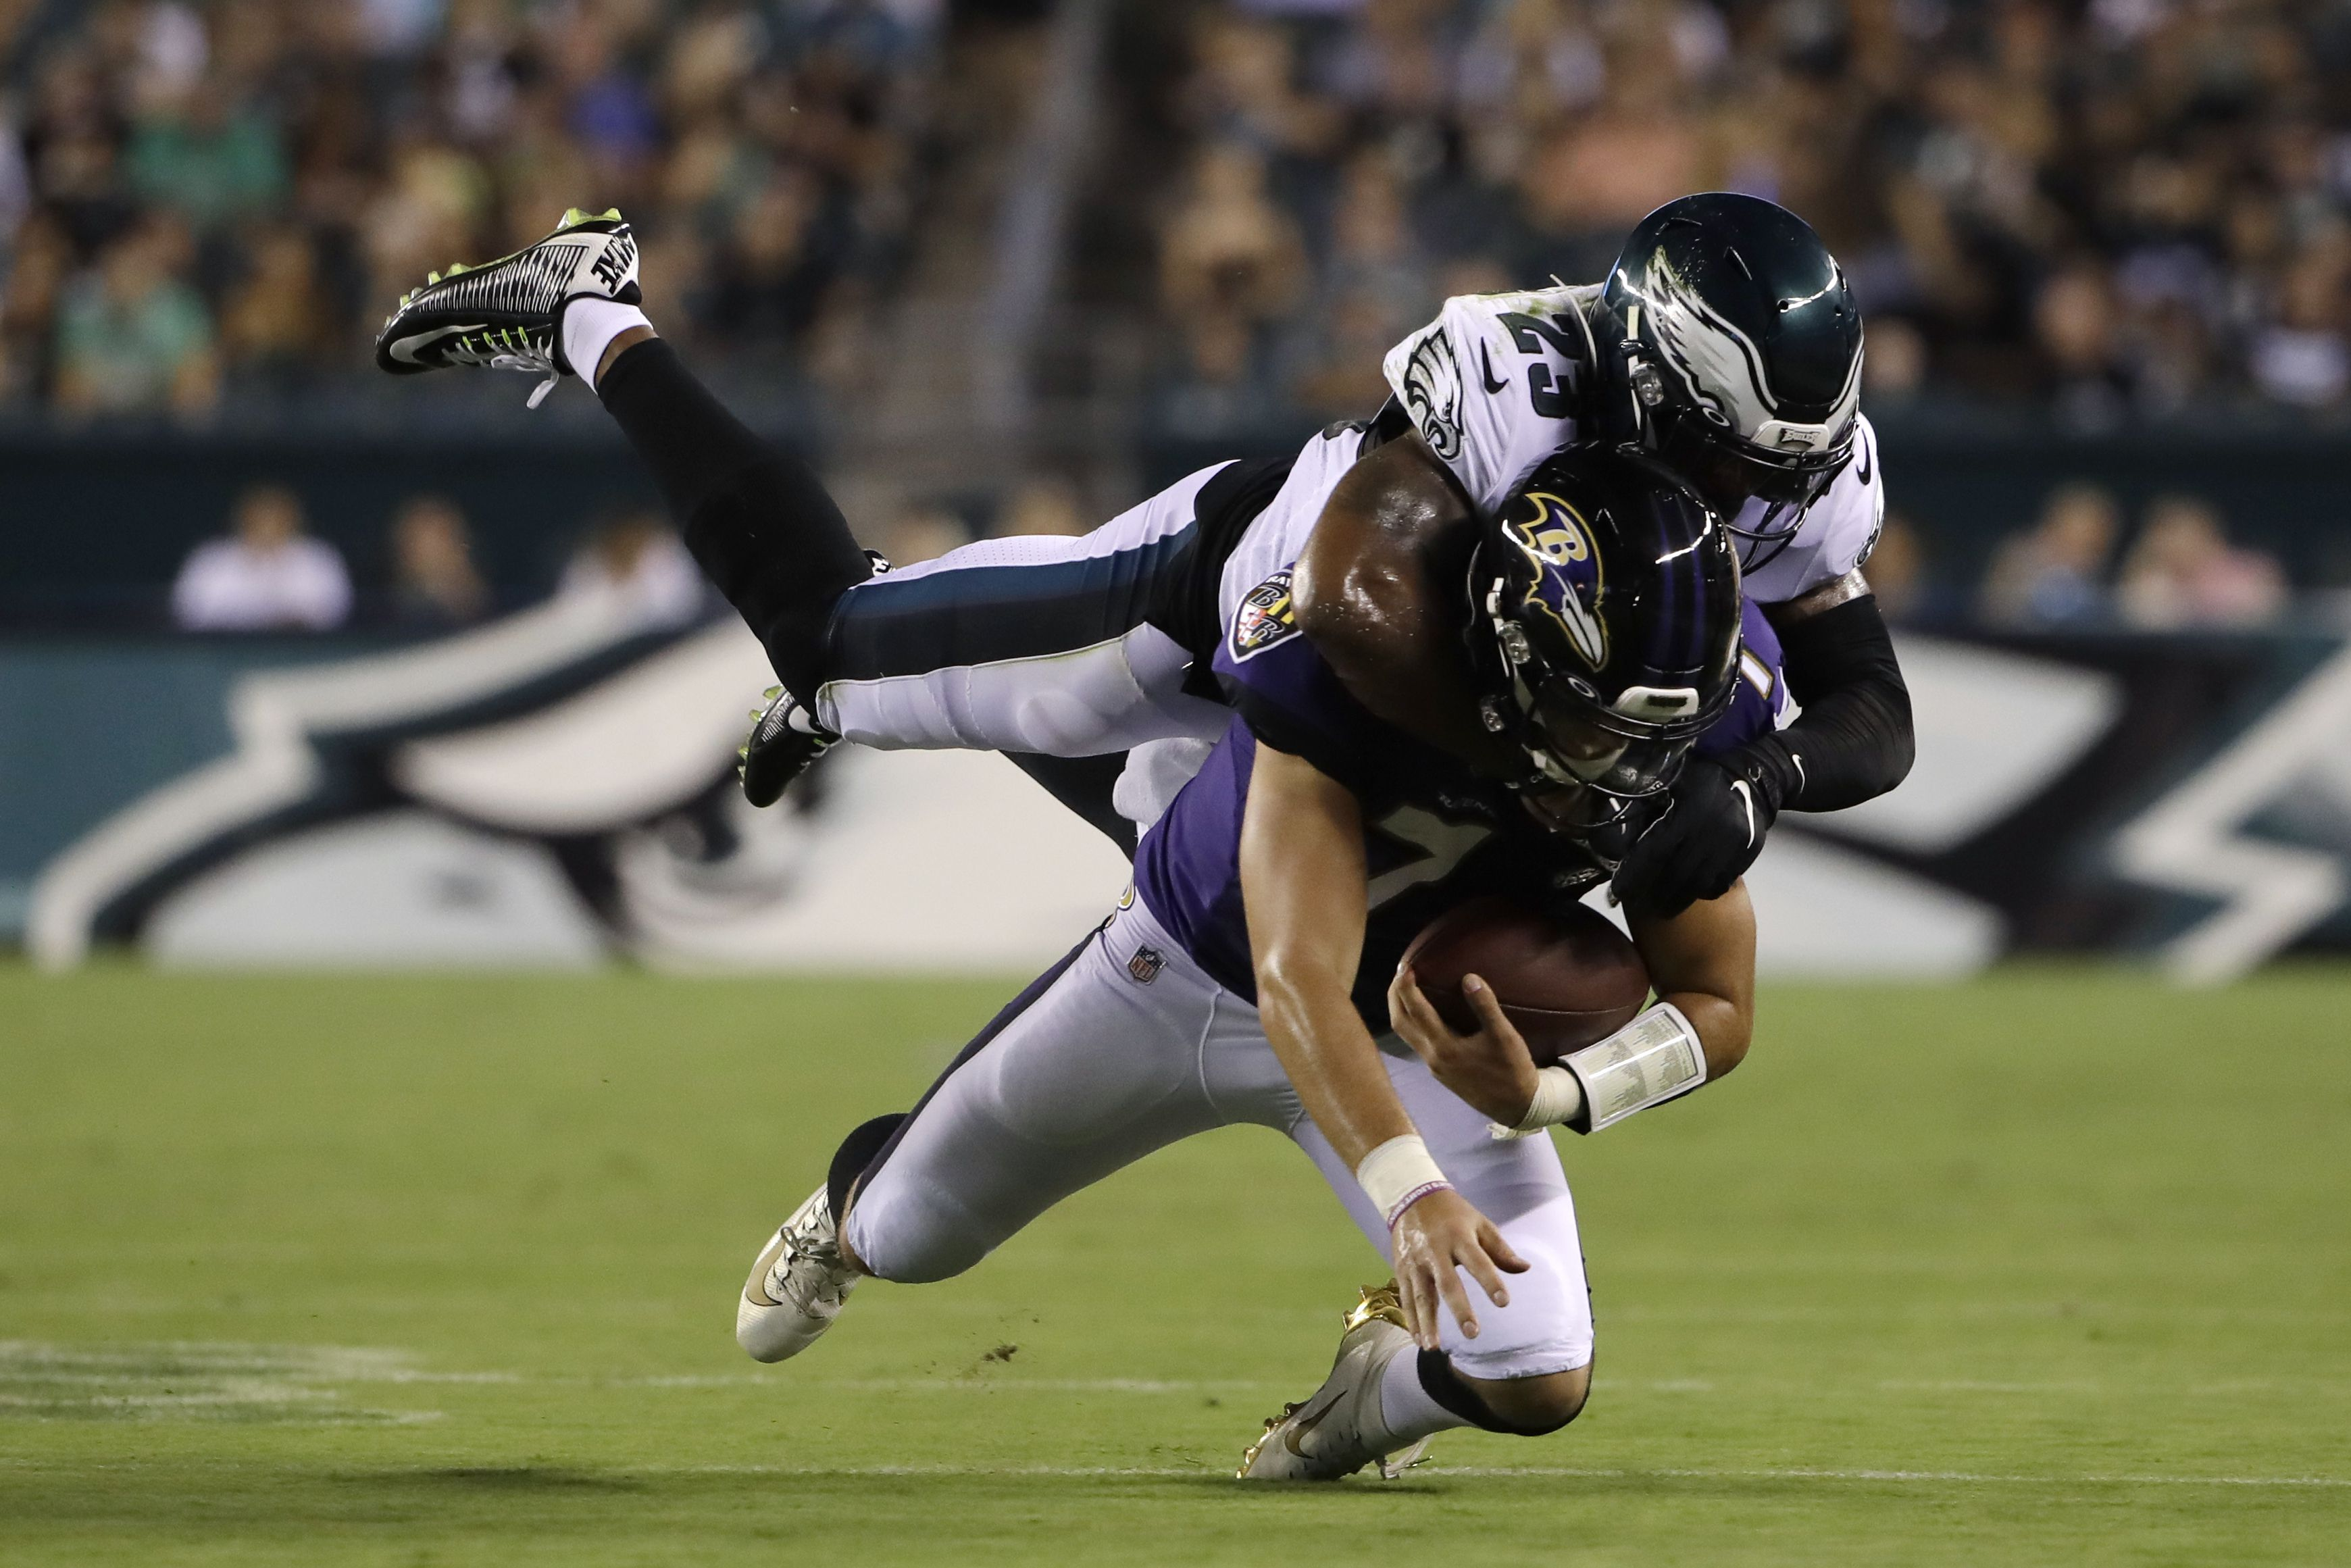 Nfl Week 6 Picks Predictions For Baltimore Ravens Vs Philadelphia Eagles Bounce Back Win With Fans In The Stands Nj Com